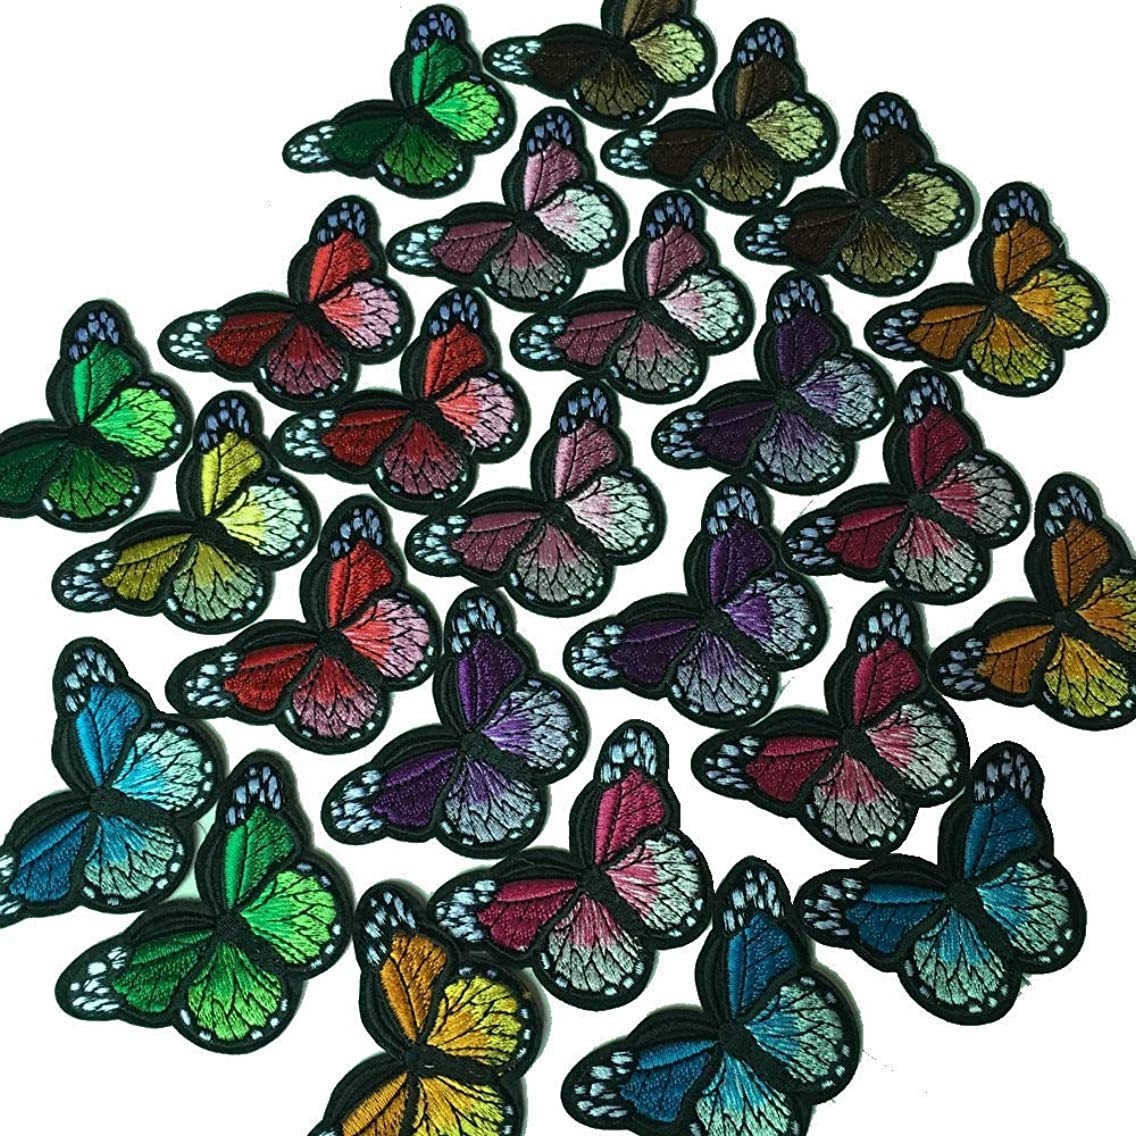 25 Piece Lovely Butterfly Patches Embroidery Sew On Appliques(random color)